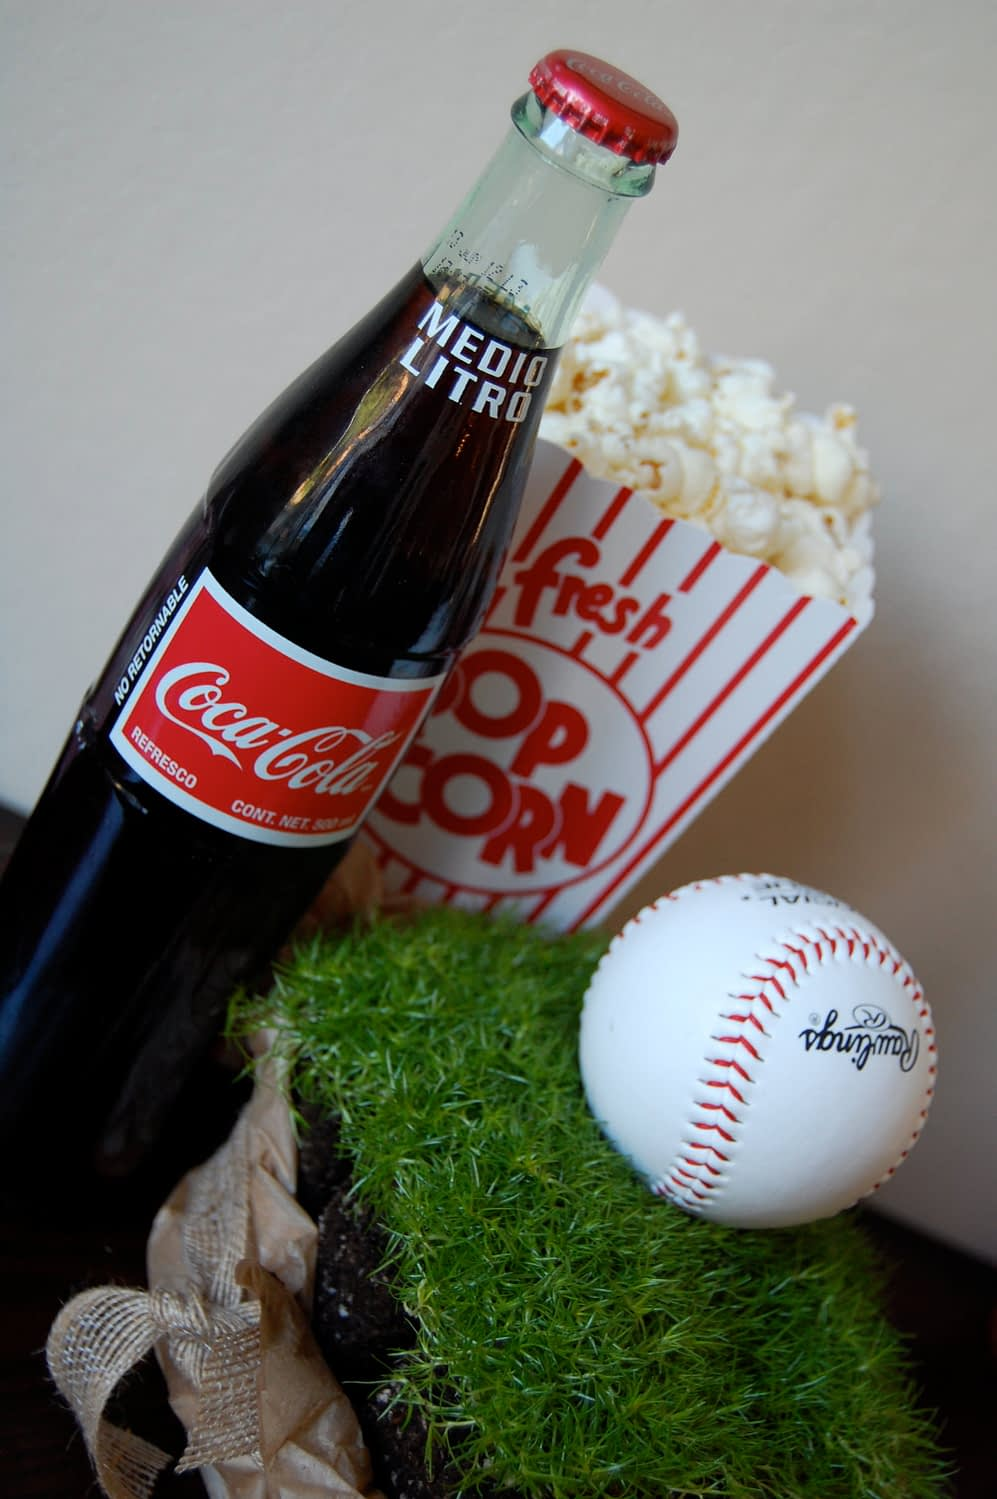 """Retro Coke bottles I found in small markets and simply used cardboard popcorn boxes, stuffed halfway with tissue paper and then topped with popcorn! The """"real baseball turf"""" was bought from Home Depot. It was actually a tray of square ground cover and I wrapped each one in brown tissue, tied with a ribbon. So easy and oh Sooooo cute! People went crazy over it!"""